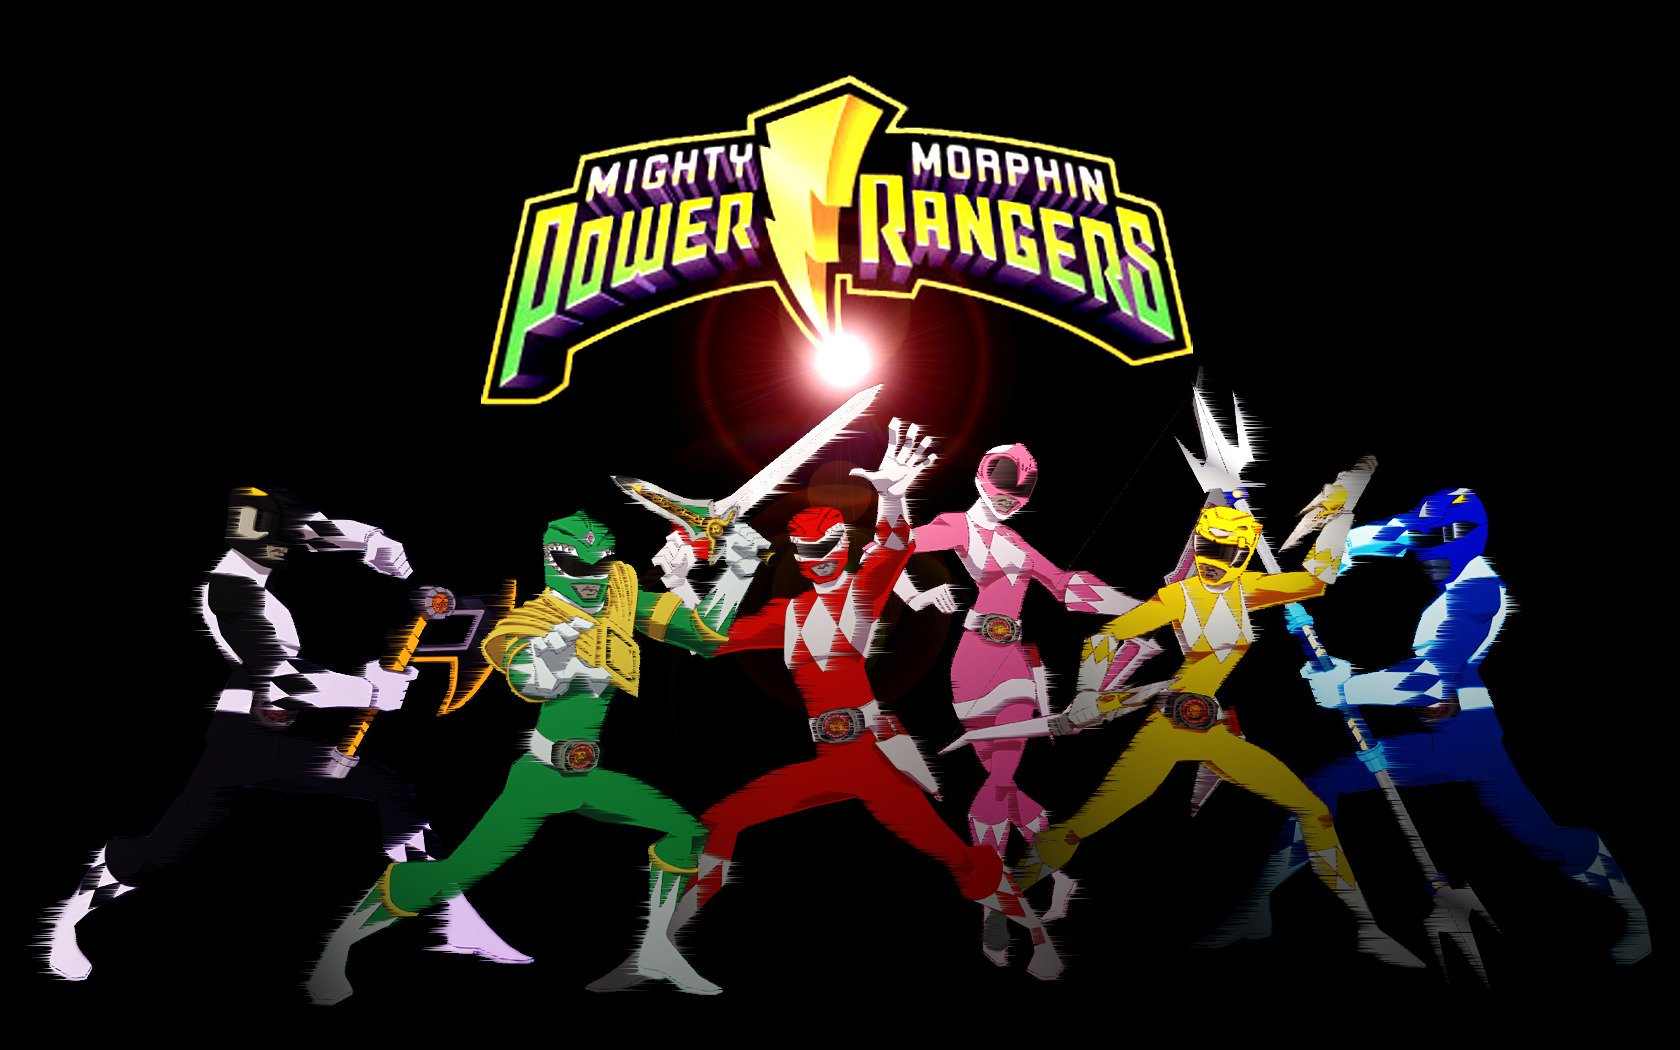 Power Rangers Wallpaper  1680x1050 256759 WallpaperUP